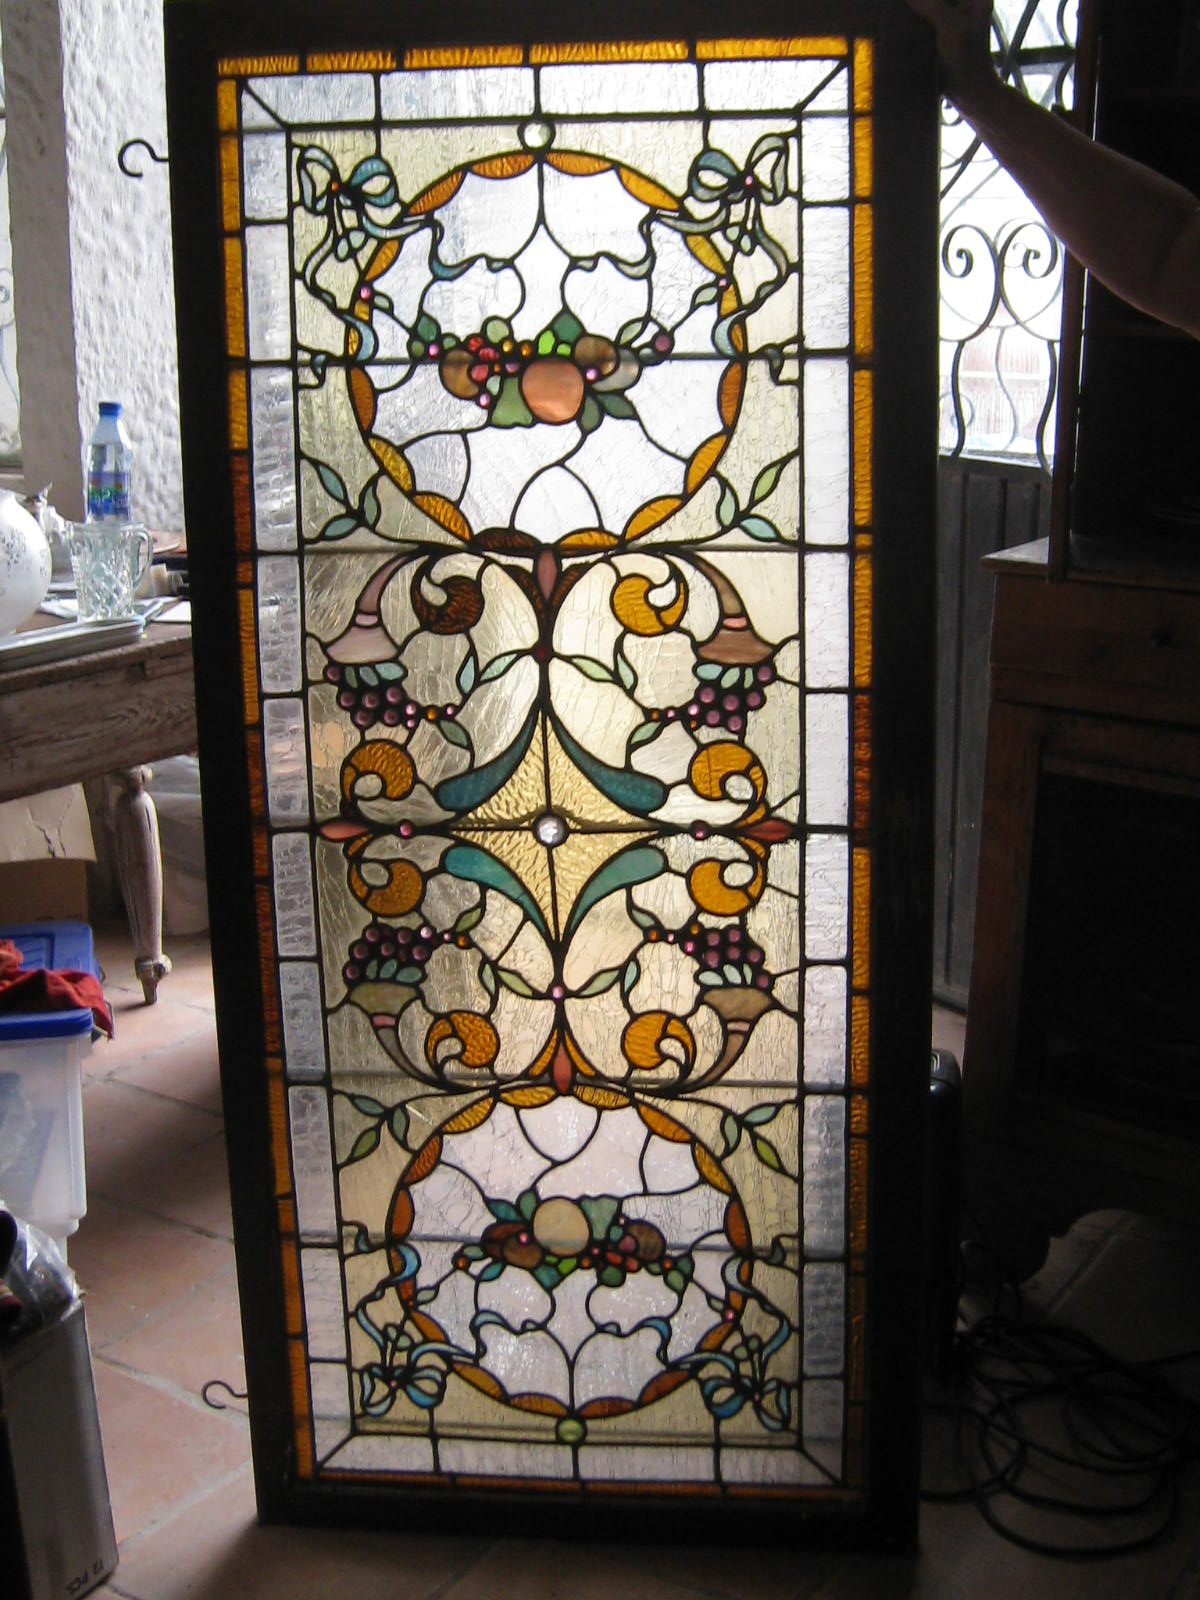 Stained glass panel antique appraisal instappraisal stained glass panel planetlyrics Gallery